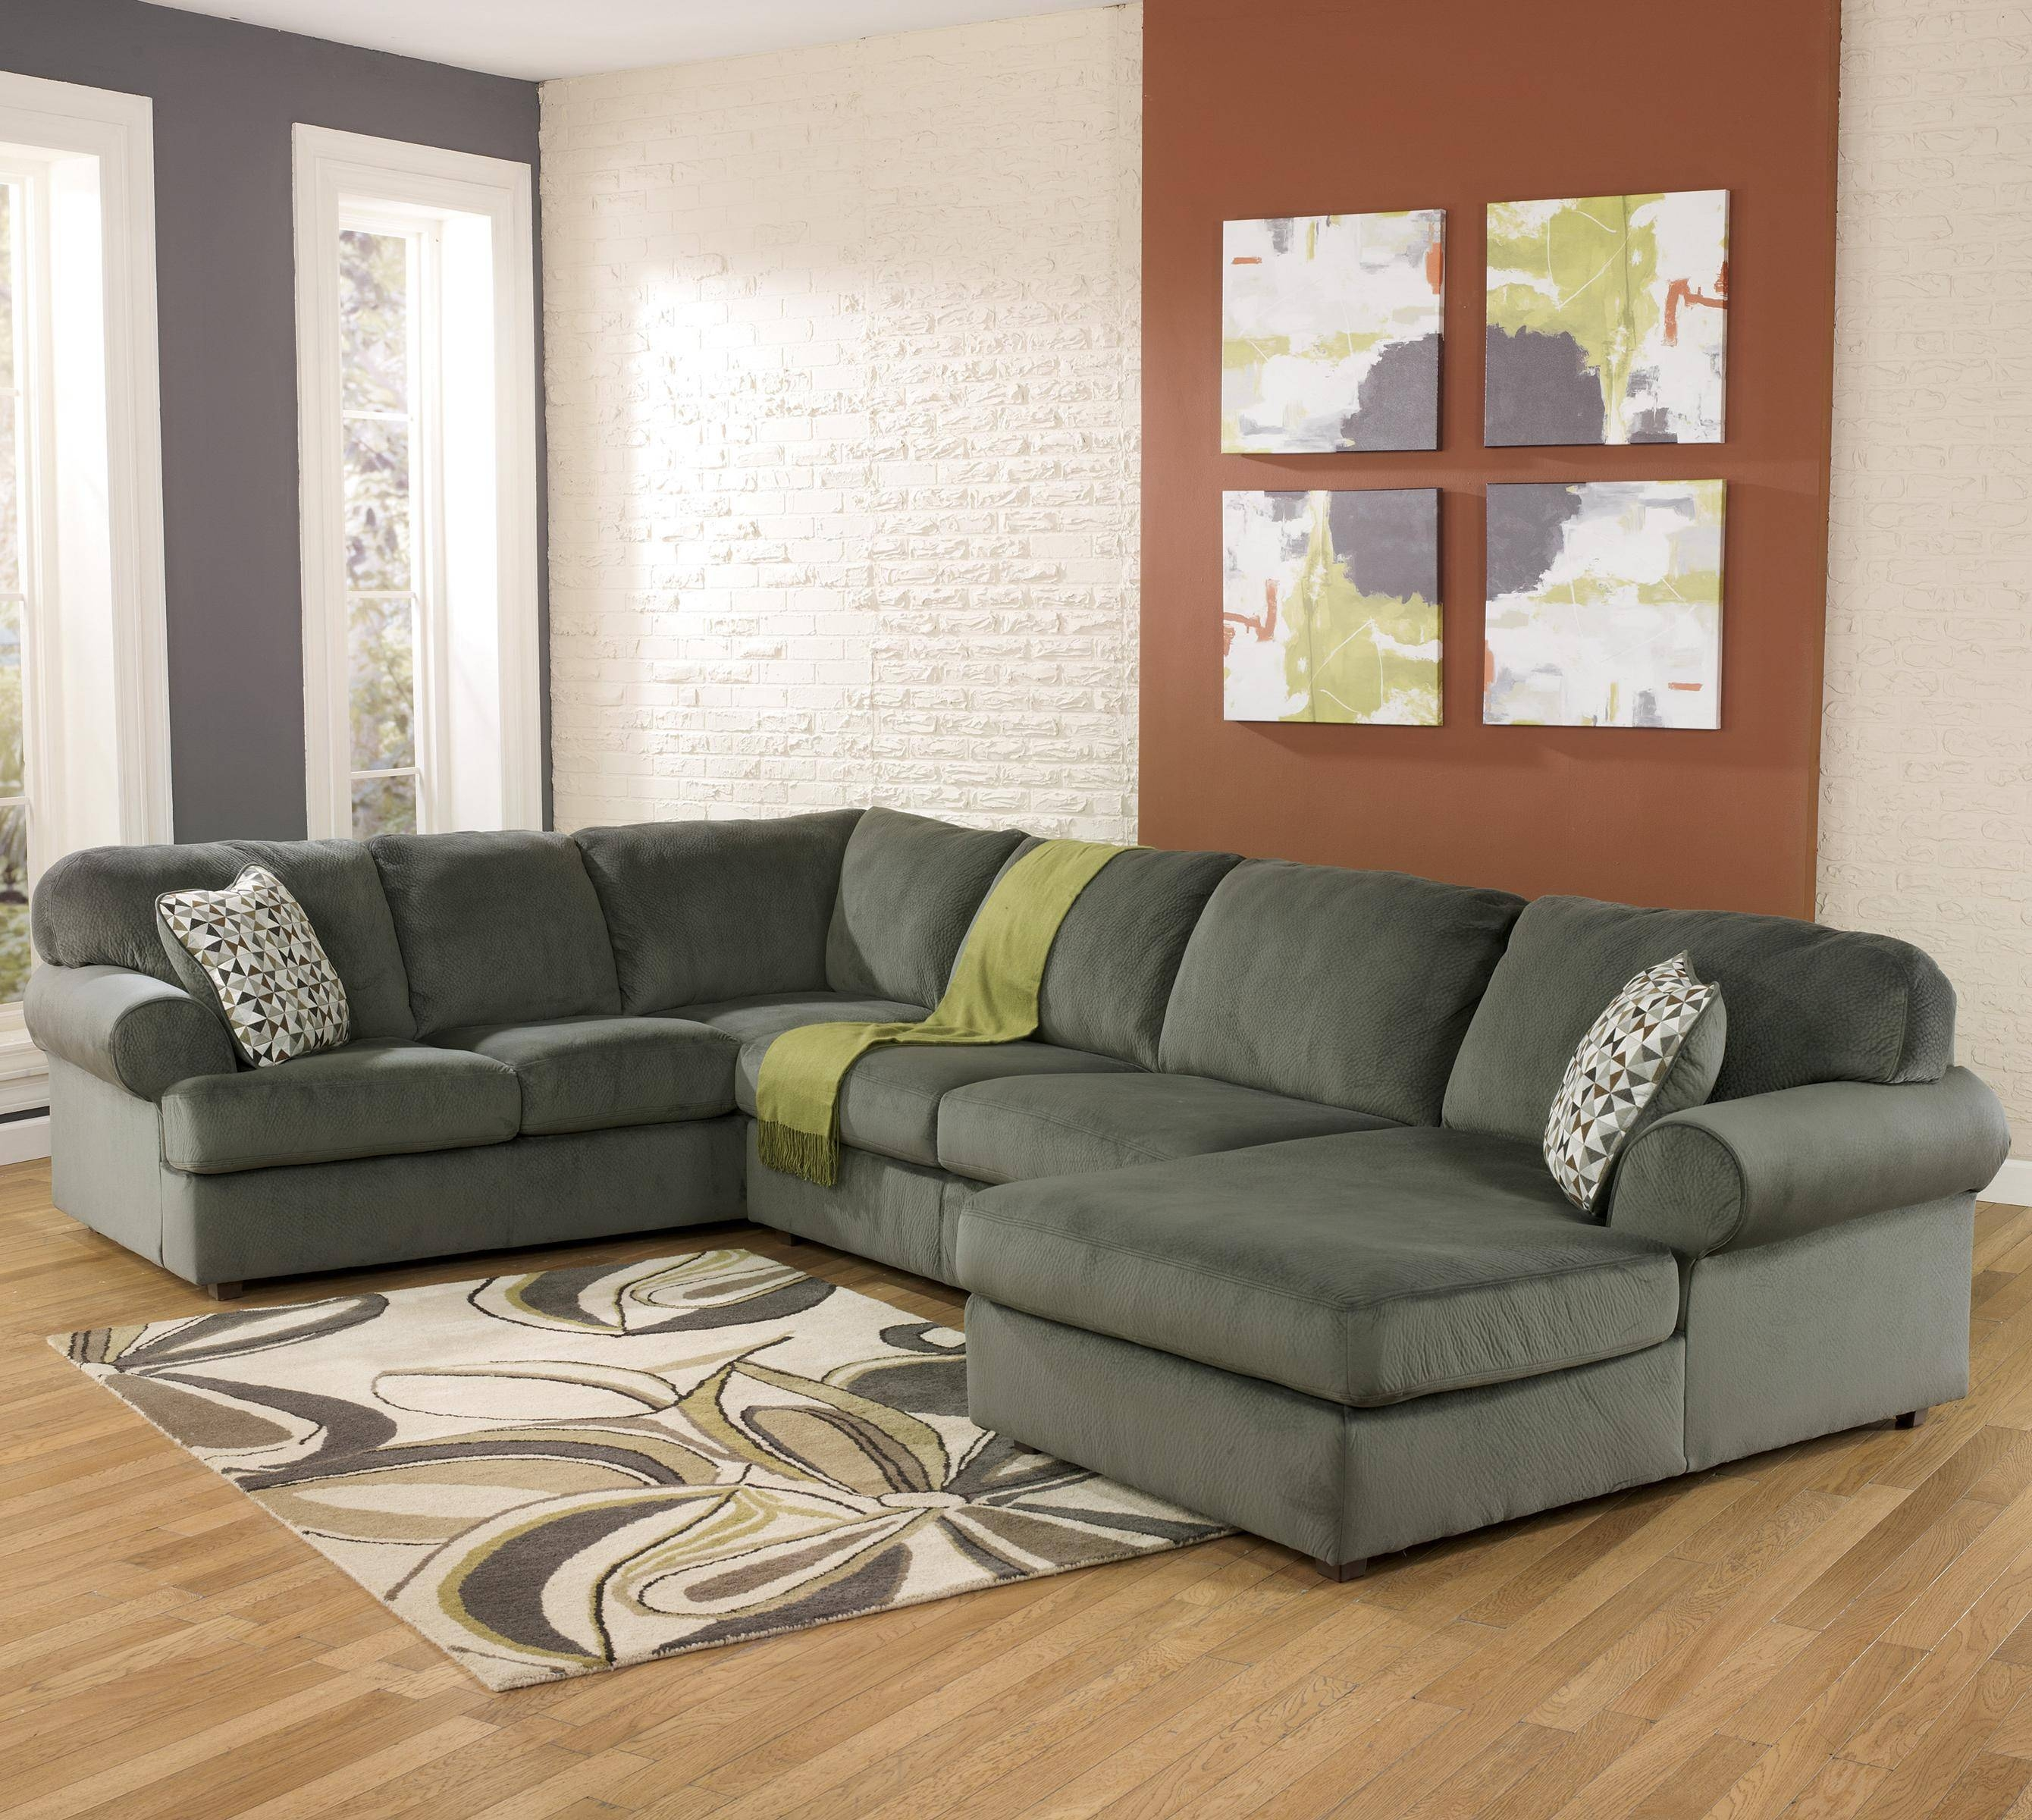 Casual Sectional Sofa With Right Chaisesignature Design intended for Signature Design Sectional Sofas (Image 3 of 15)